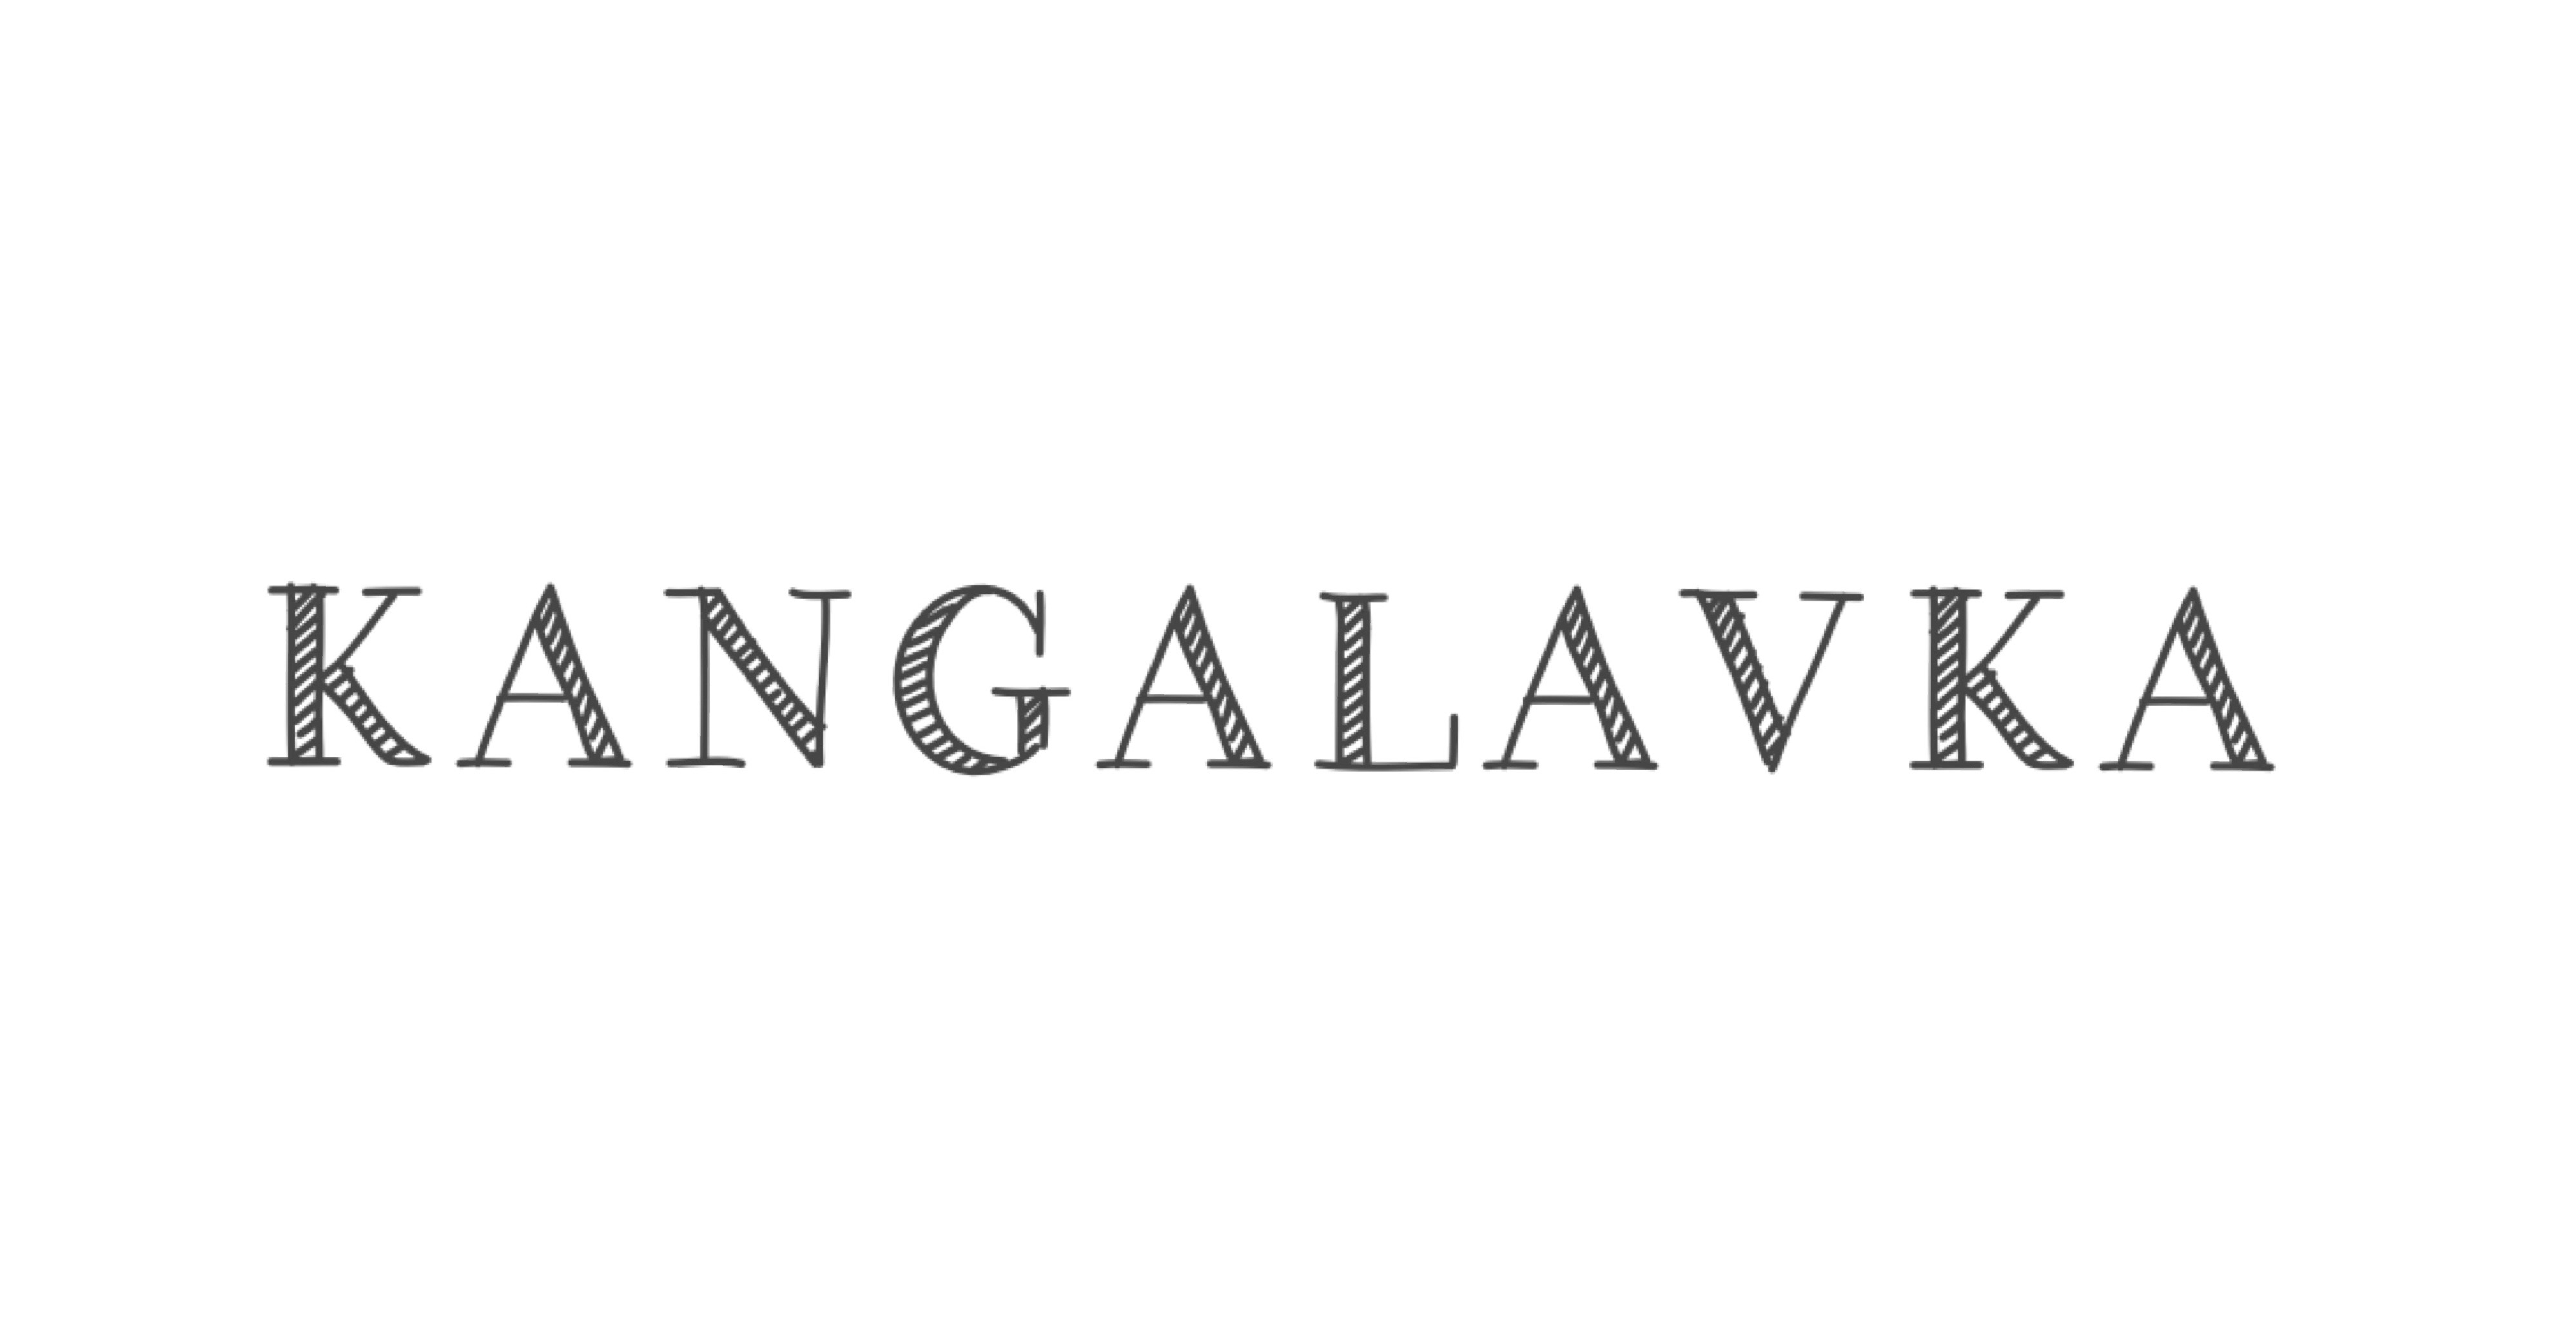 KANGALAVKA